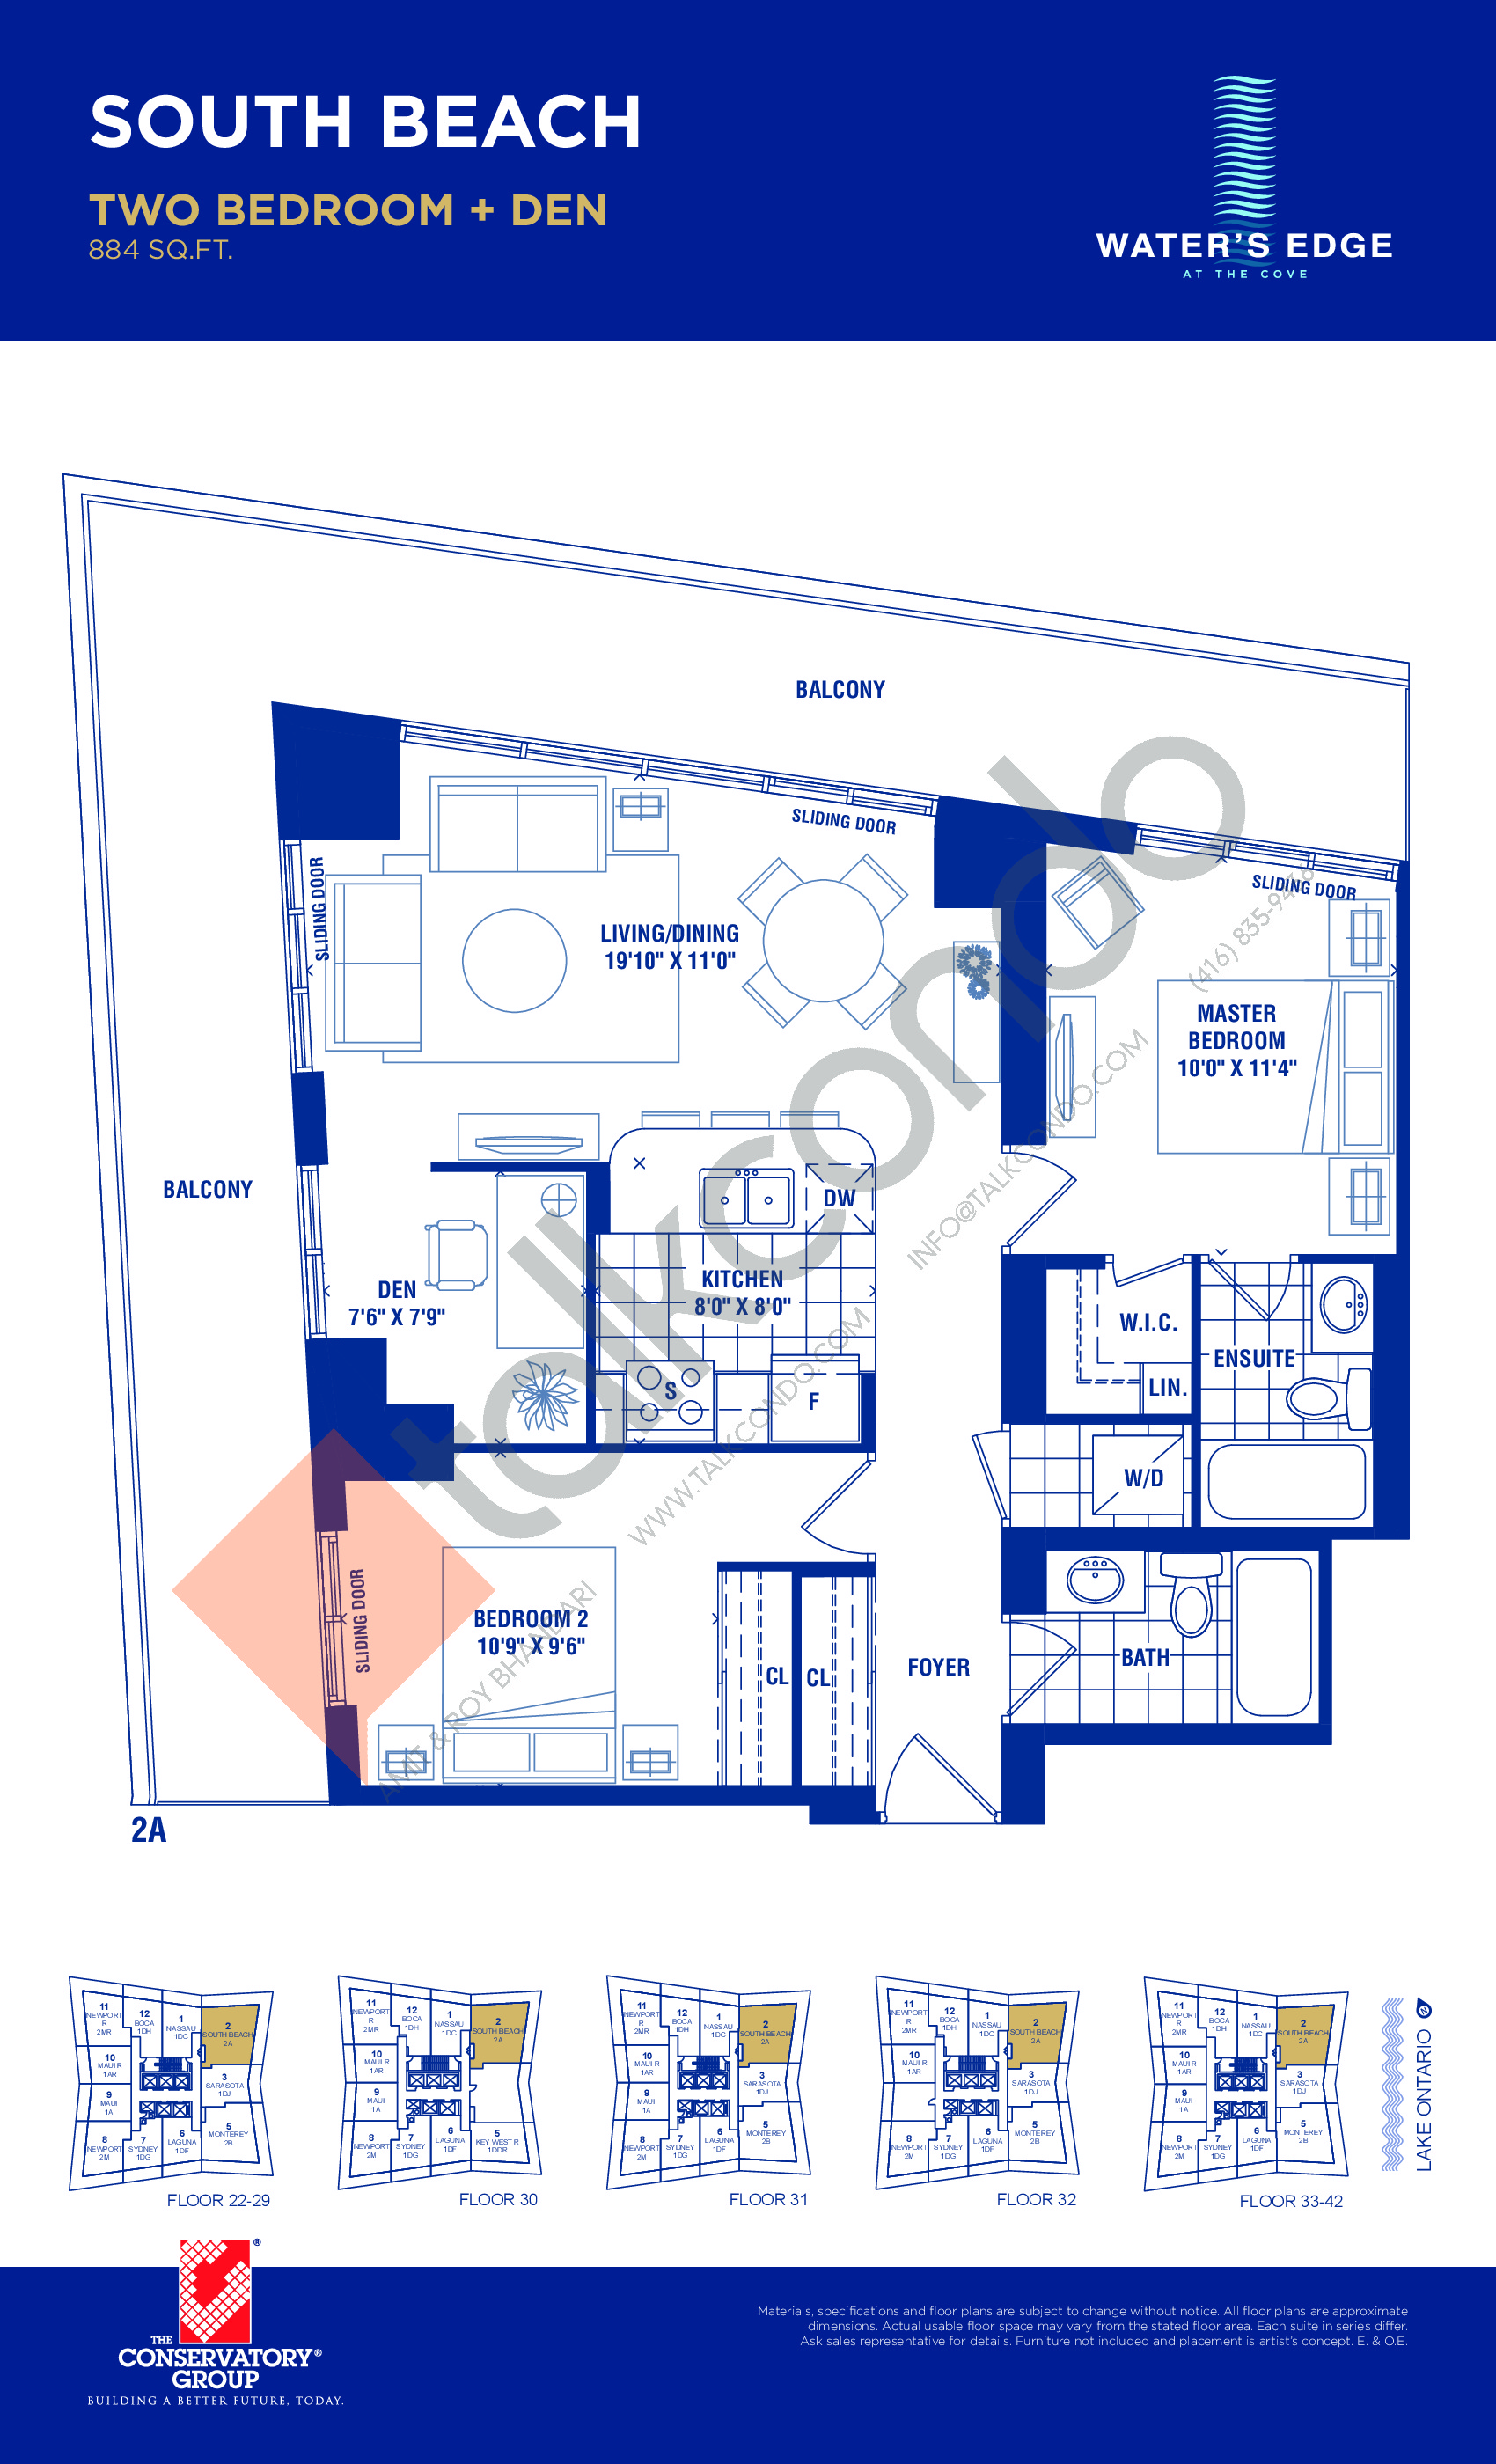 South Beach Floor Plan at Water's Edge at the Cove Condos - 884 sq.ft